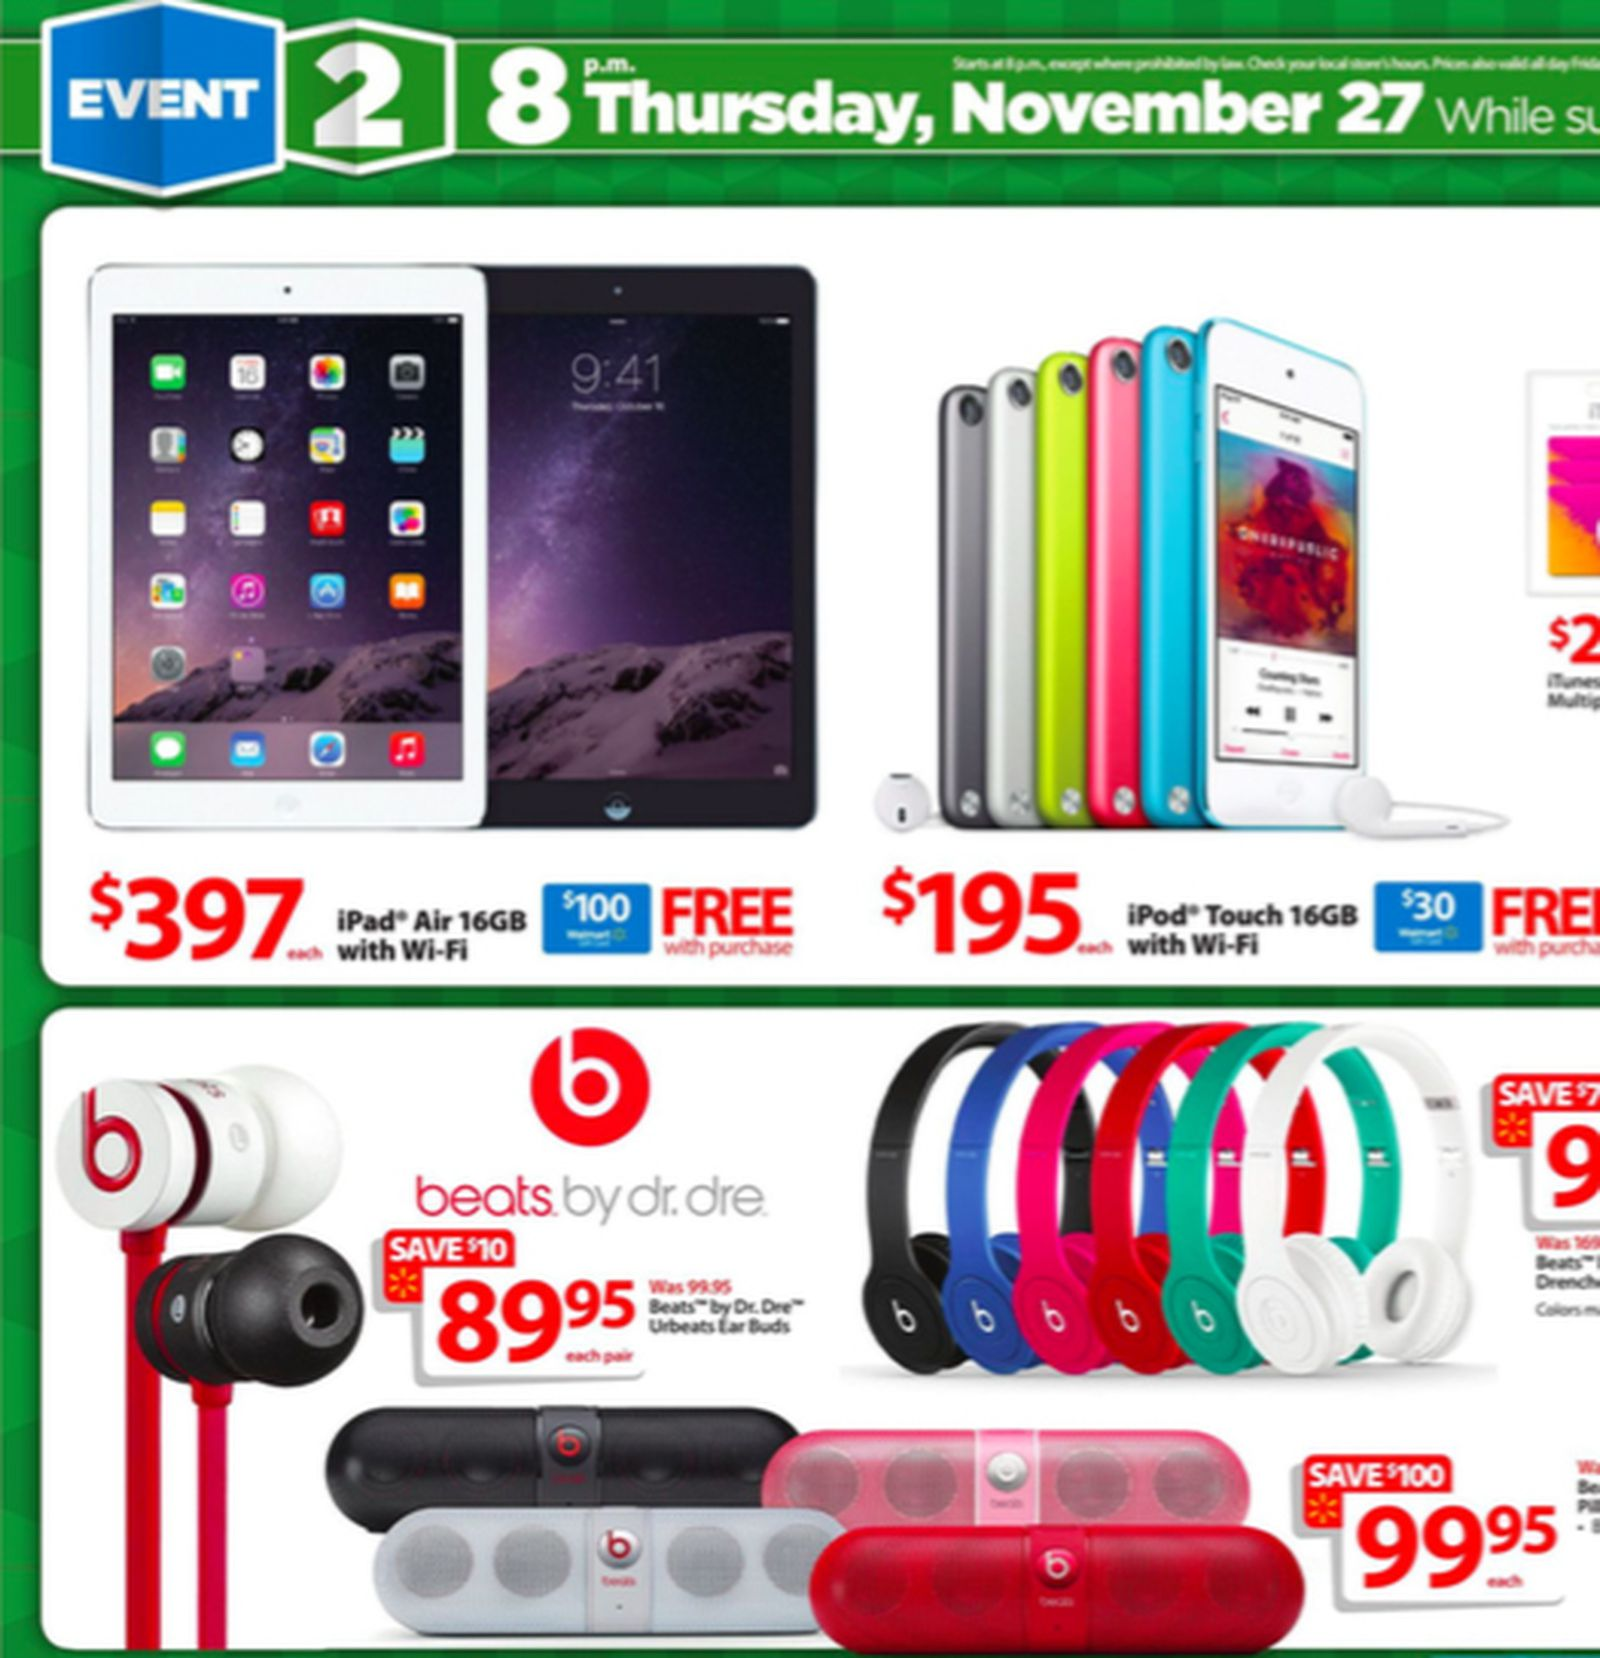 Wal Mart Offering Gift Cards With Purchase Of Discounted Ipads And More On Black Friday Macrumors